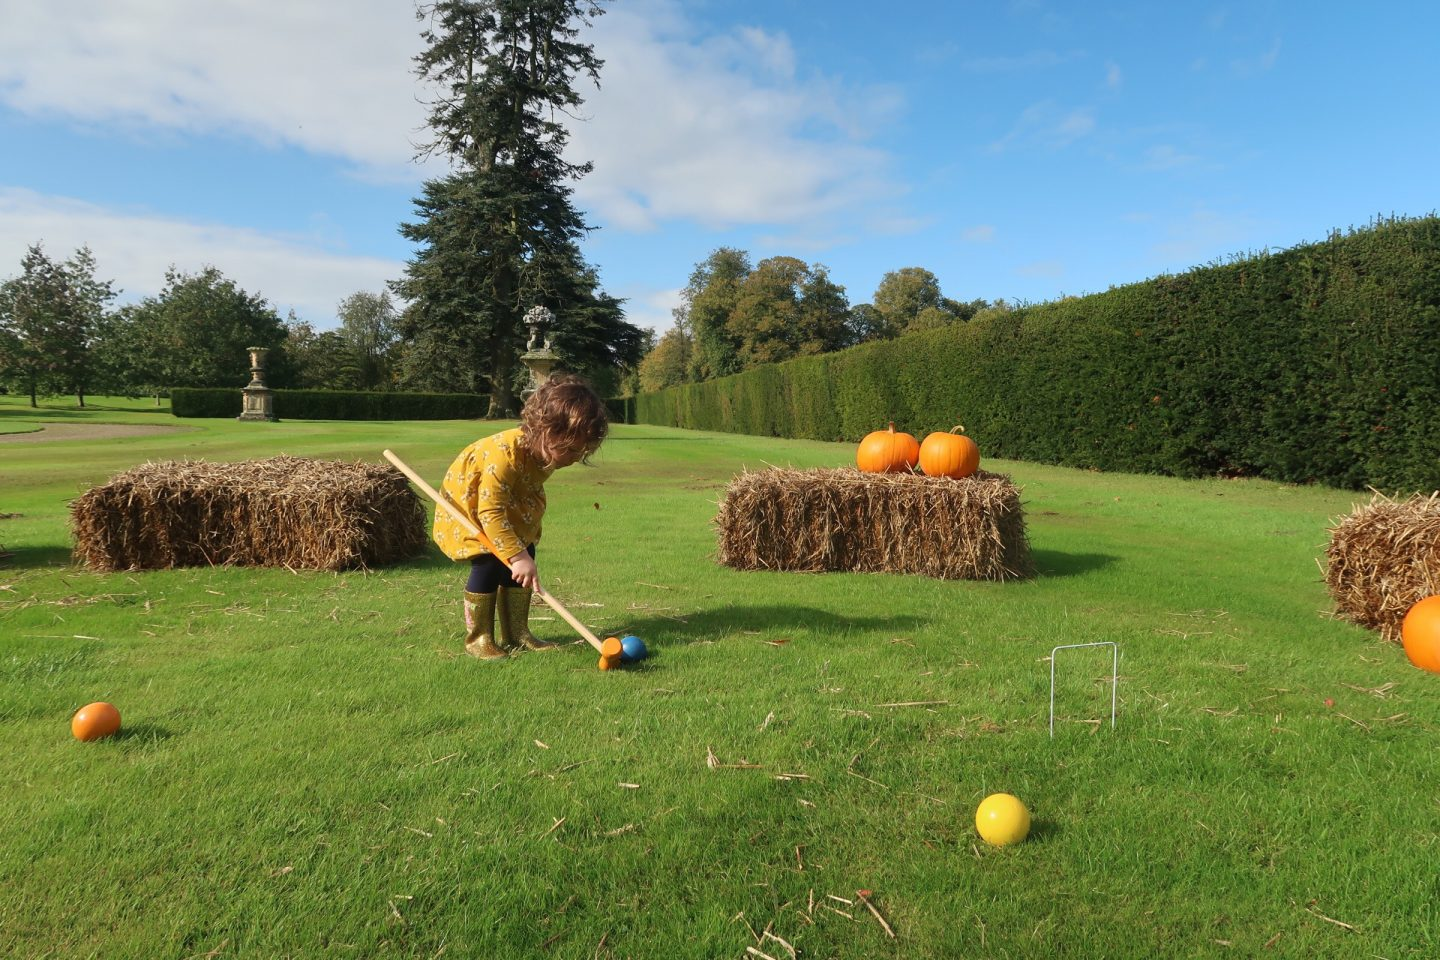 Castle Howard Autumn festival with pumpkin croquet